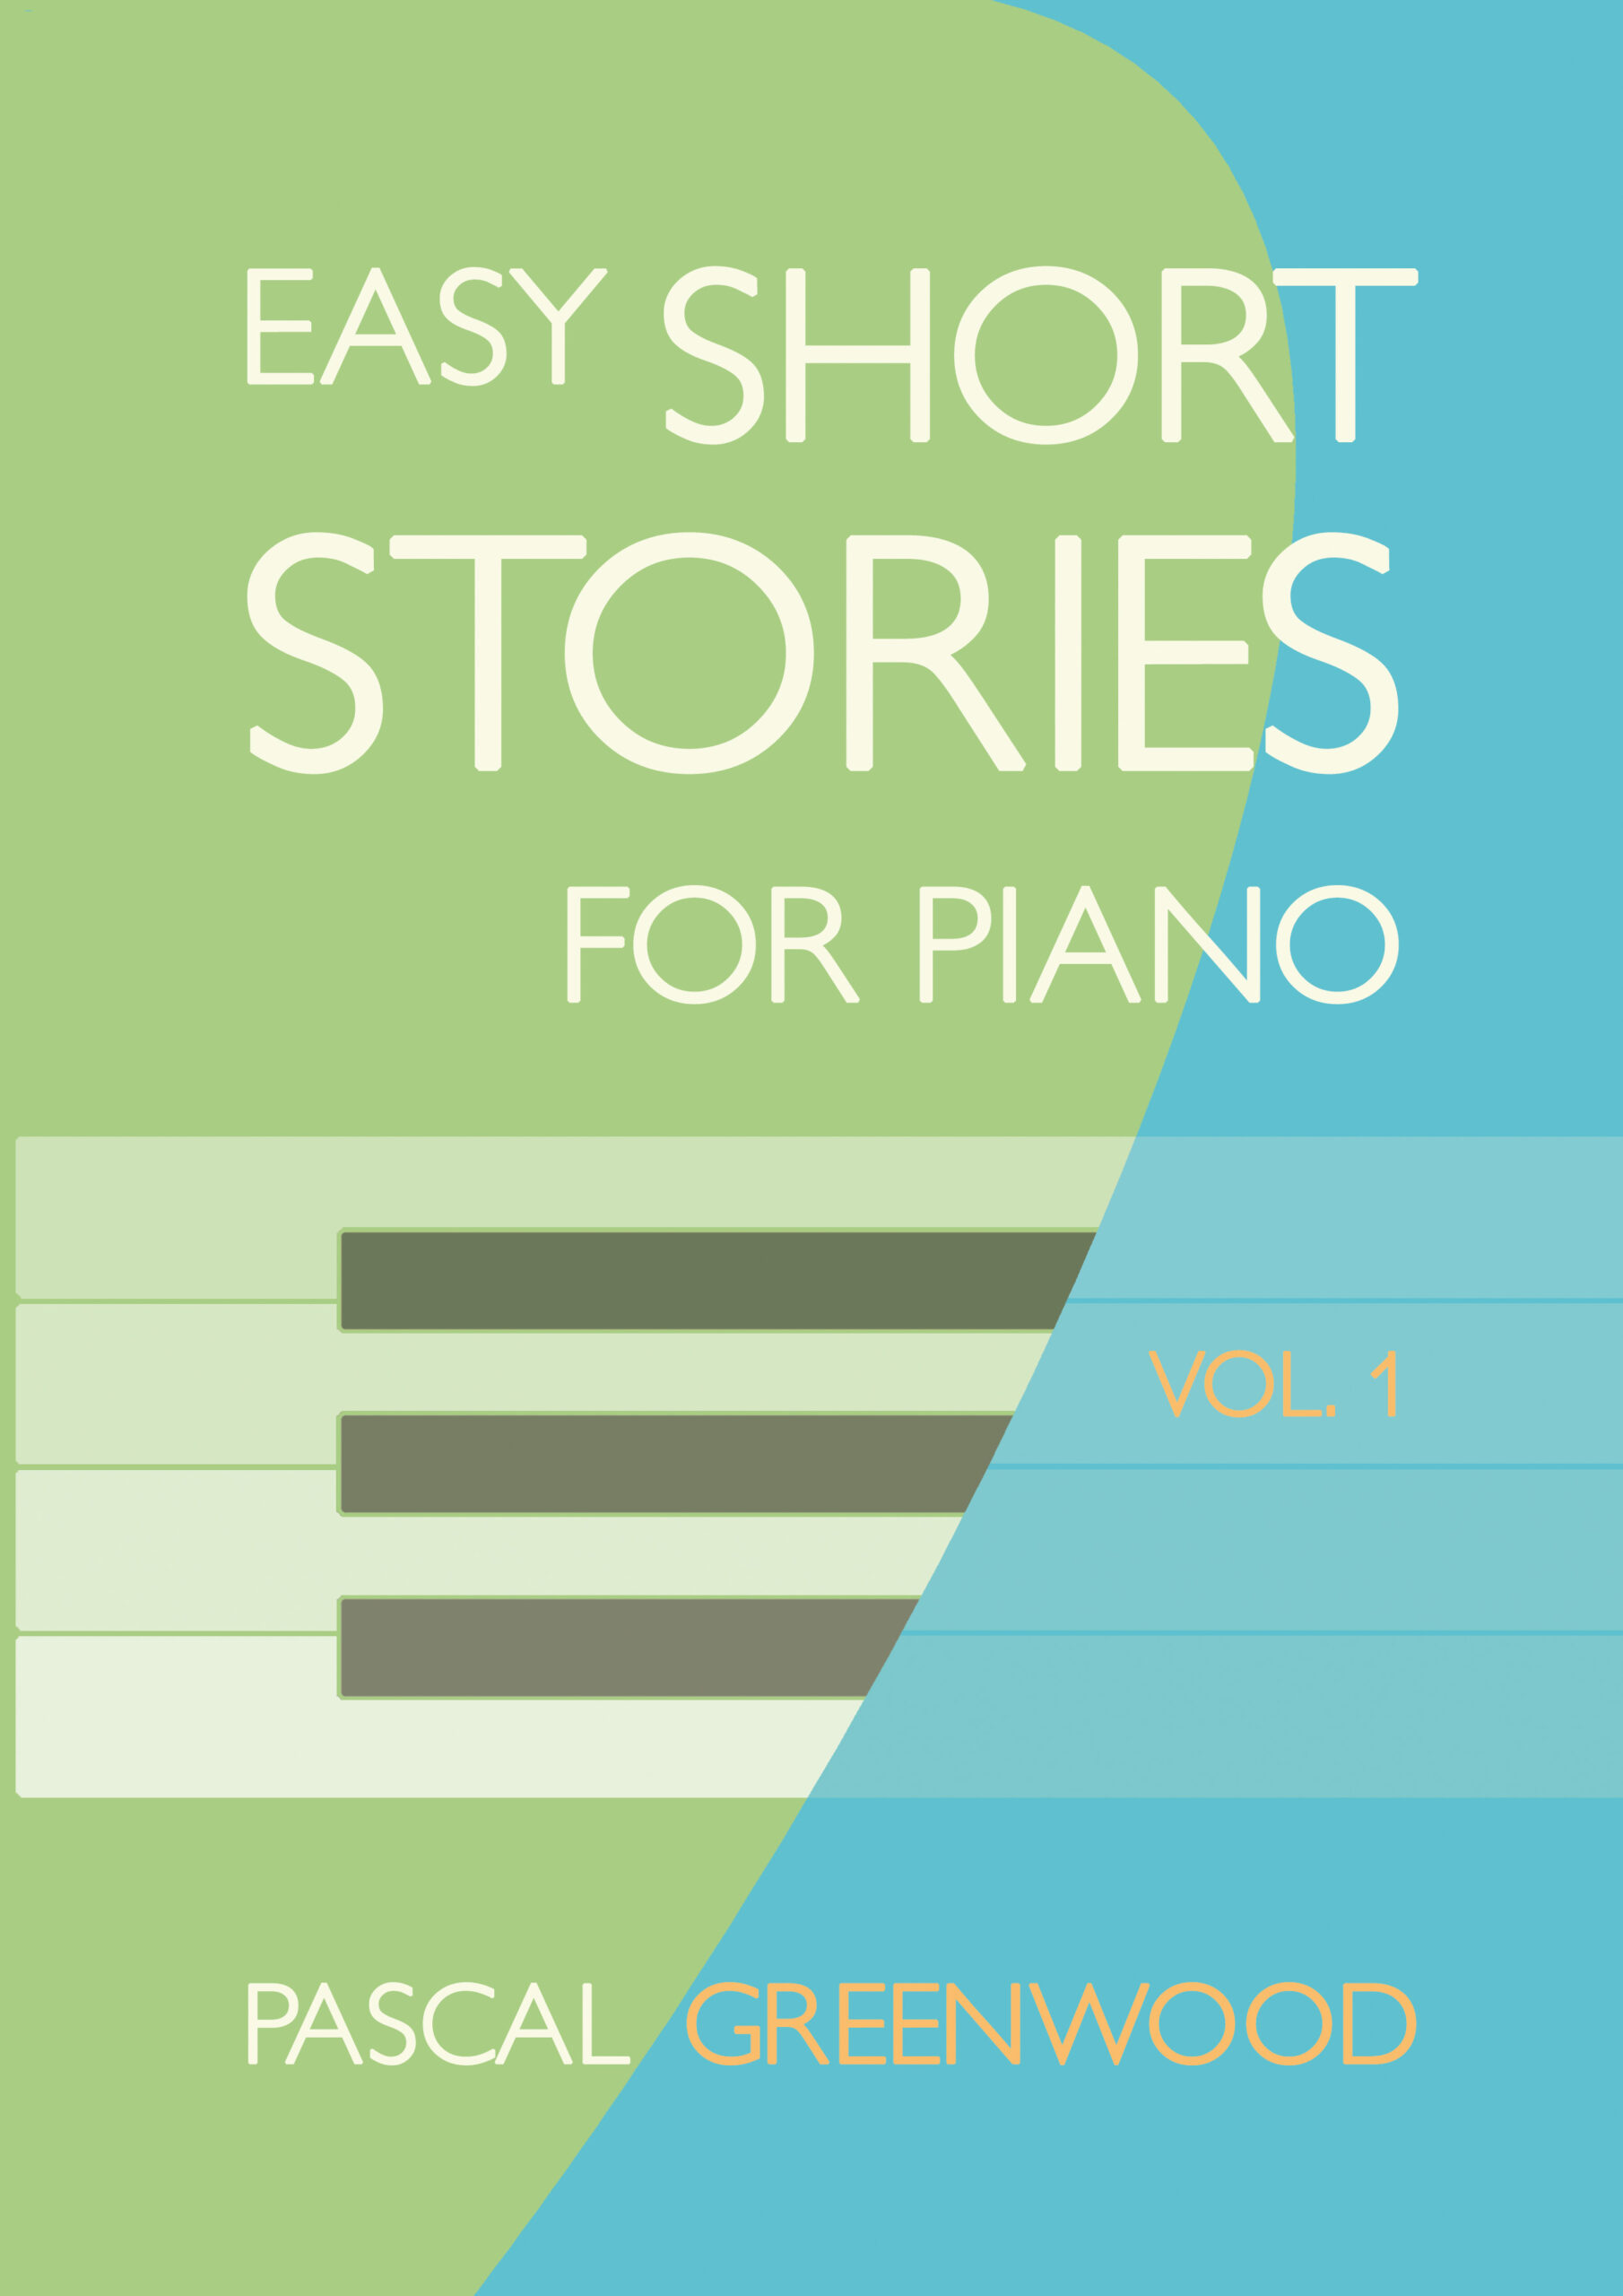 Easy Short Stories for Piano Vol. 1